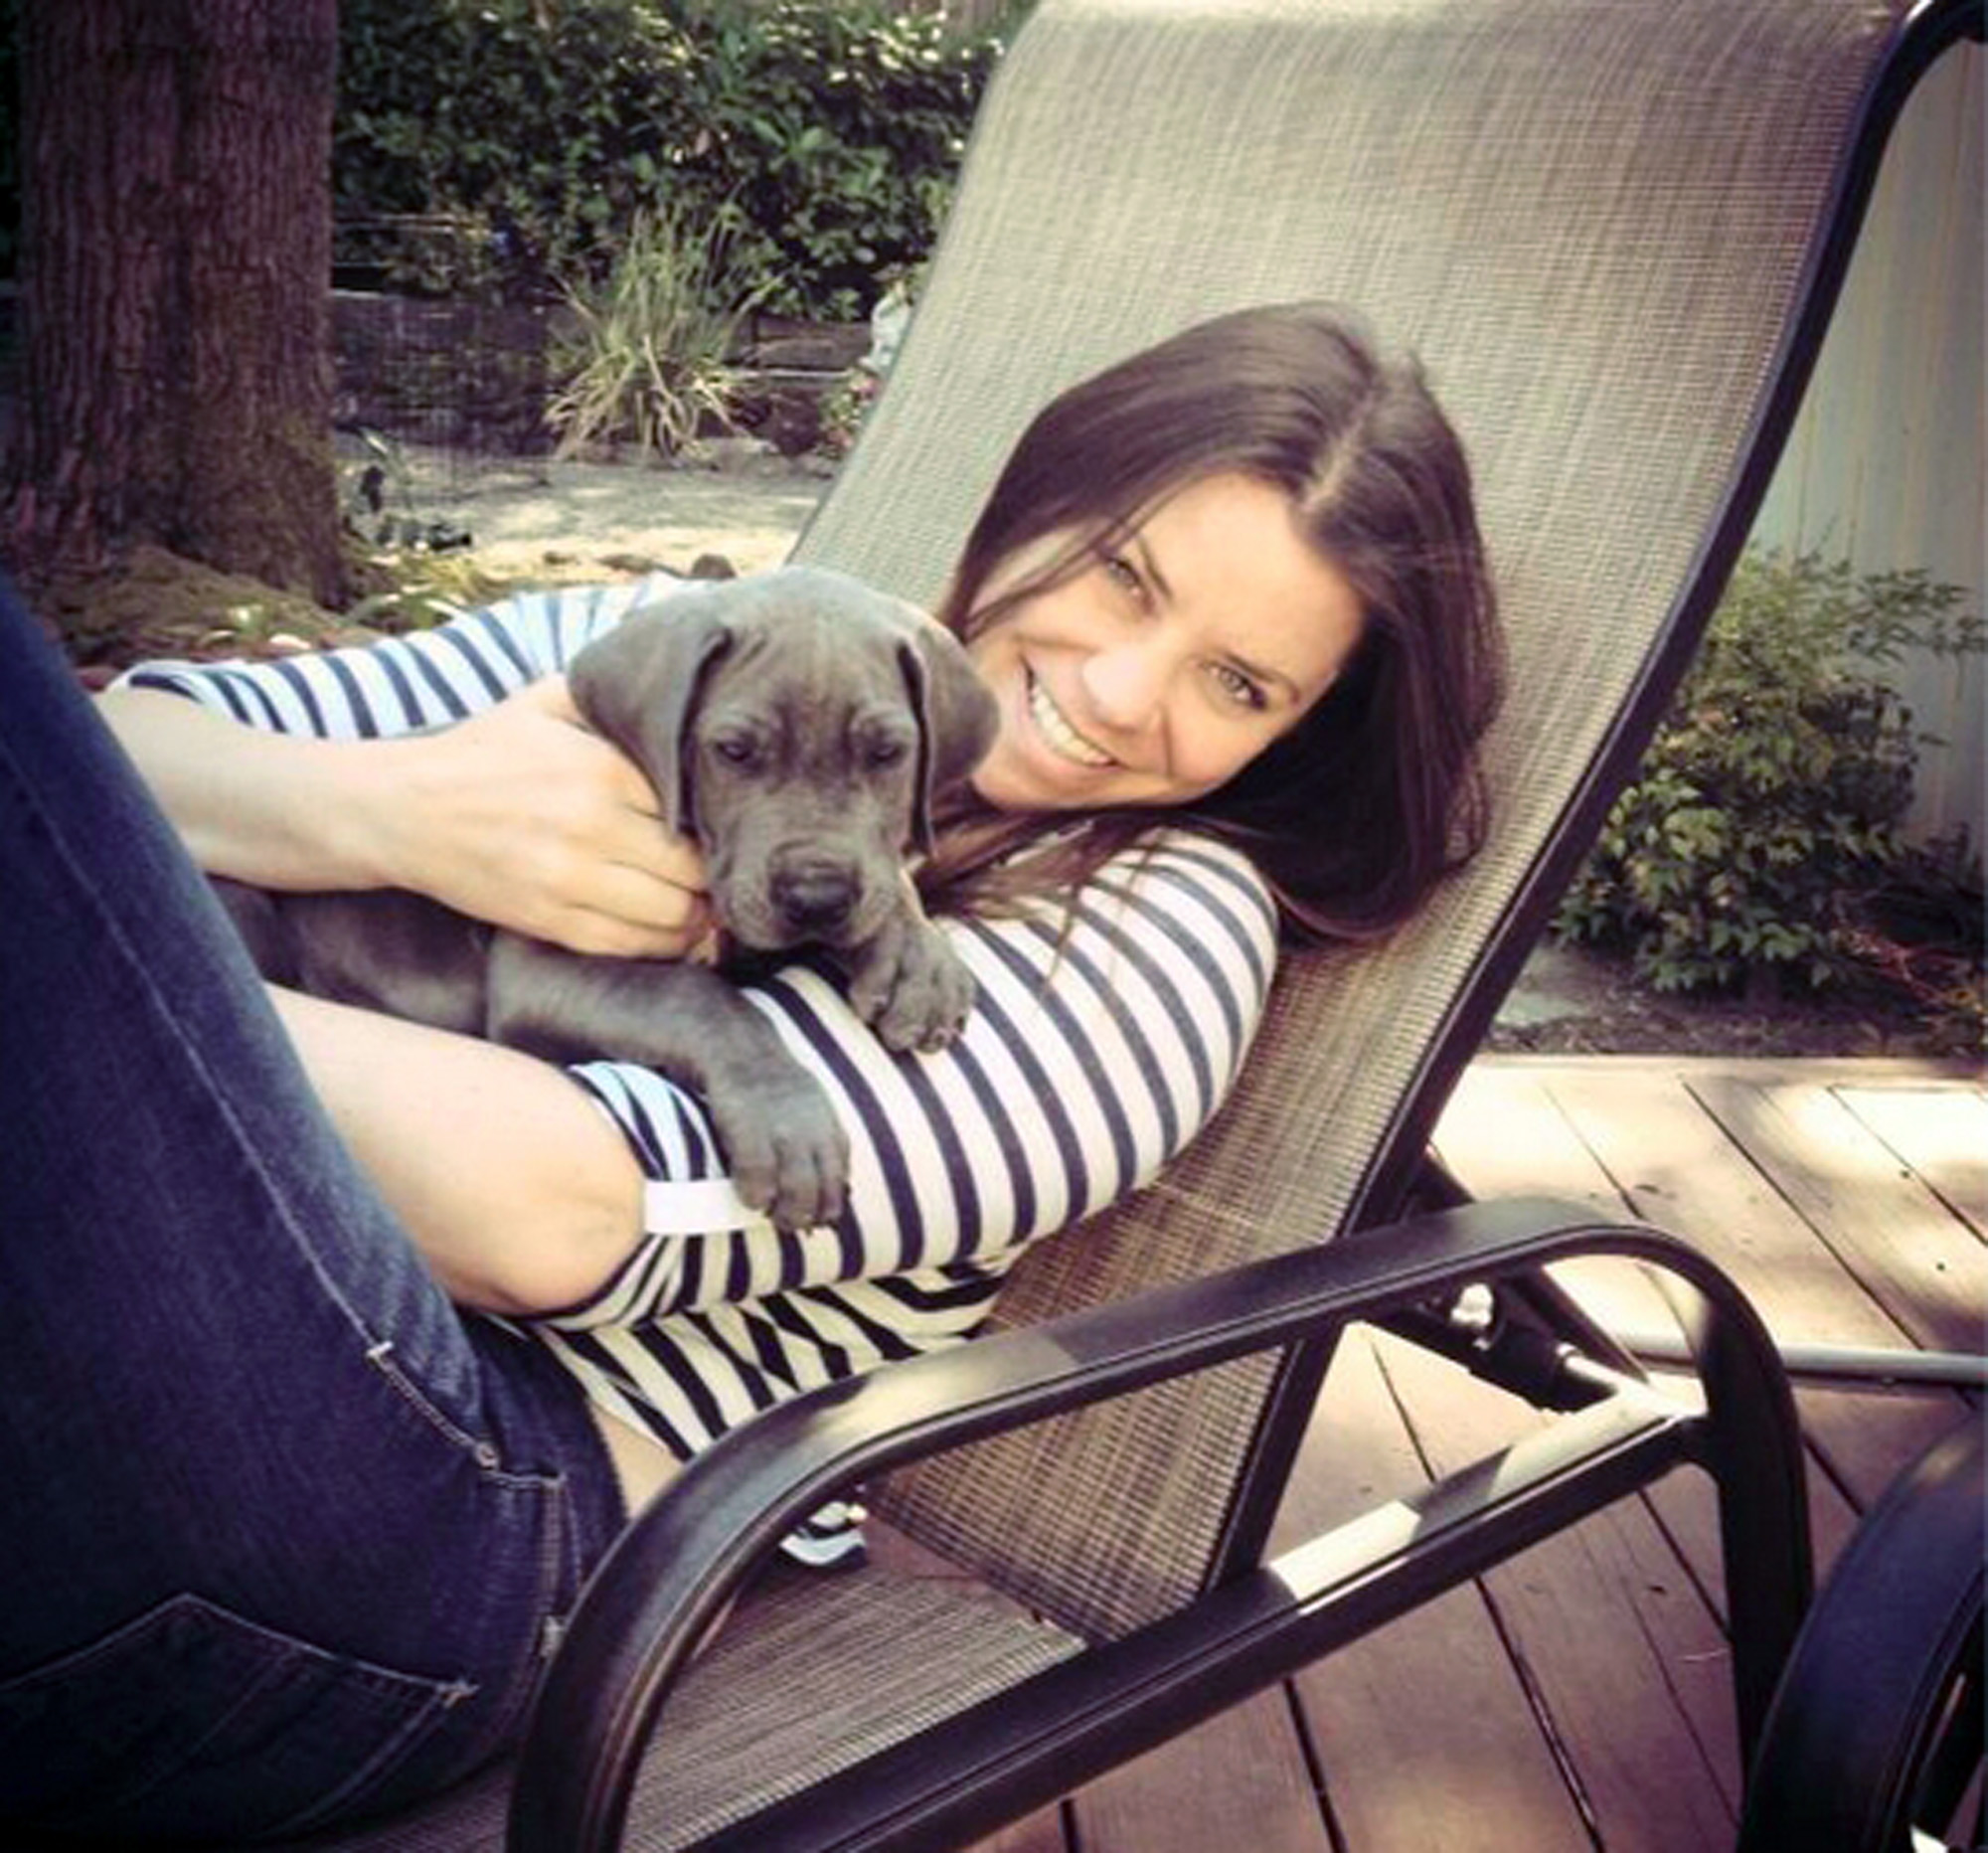 This undated file photo provided by the Maynard family shows Brittany Maynard, a 29-year-old terminally ill woman who plans to take her own life under Oregon's death with dignity law.